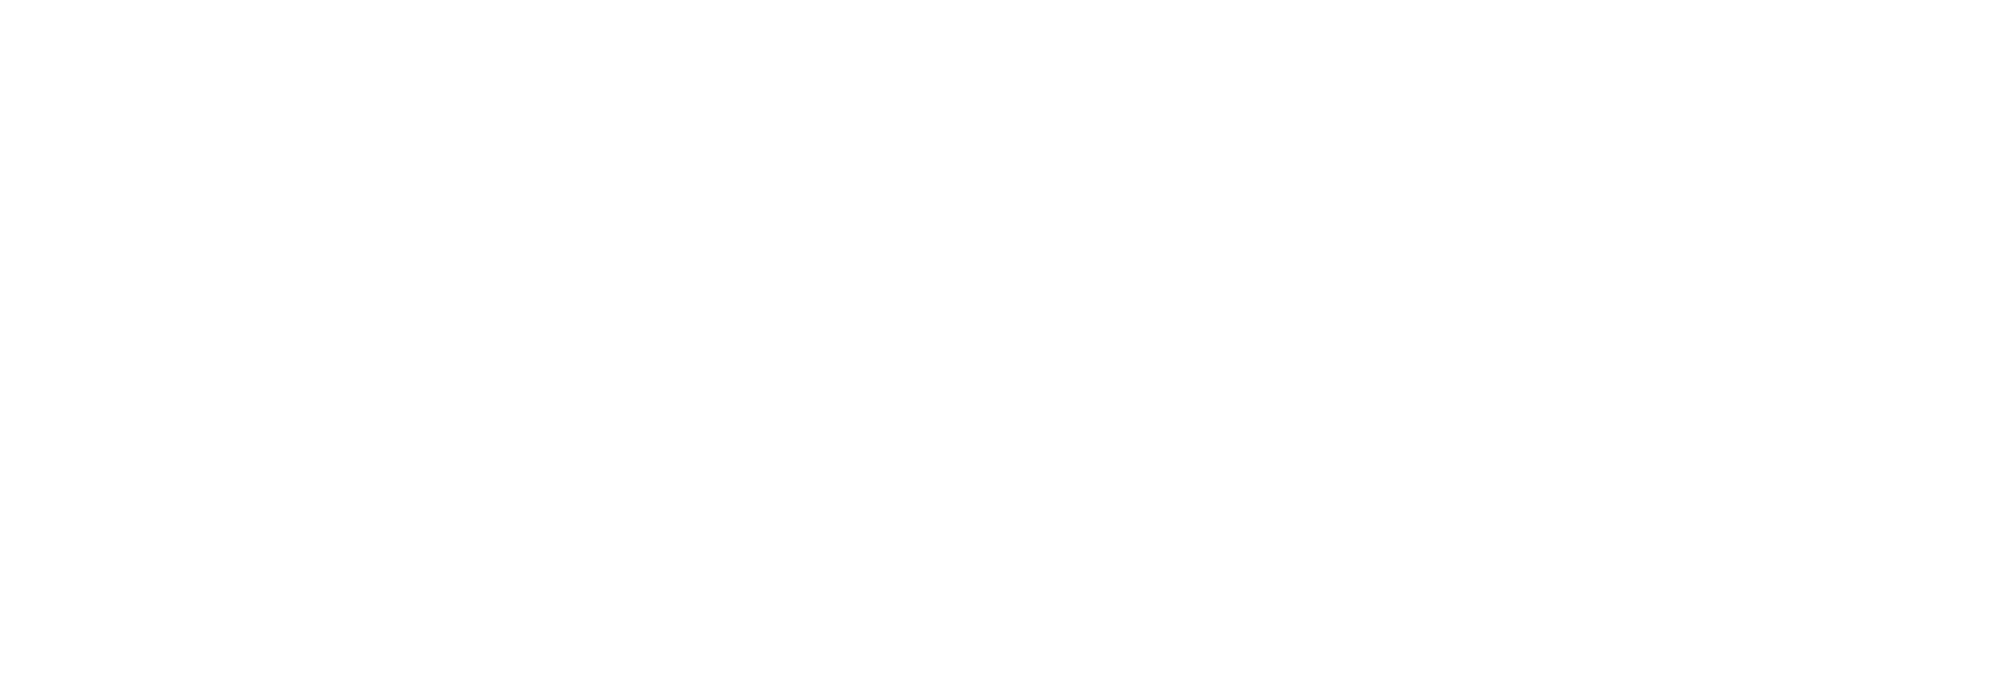 graphics amp logos wordpressorg